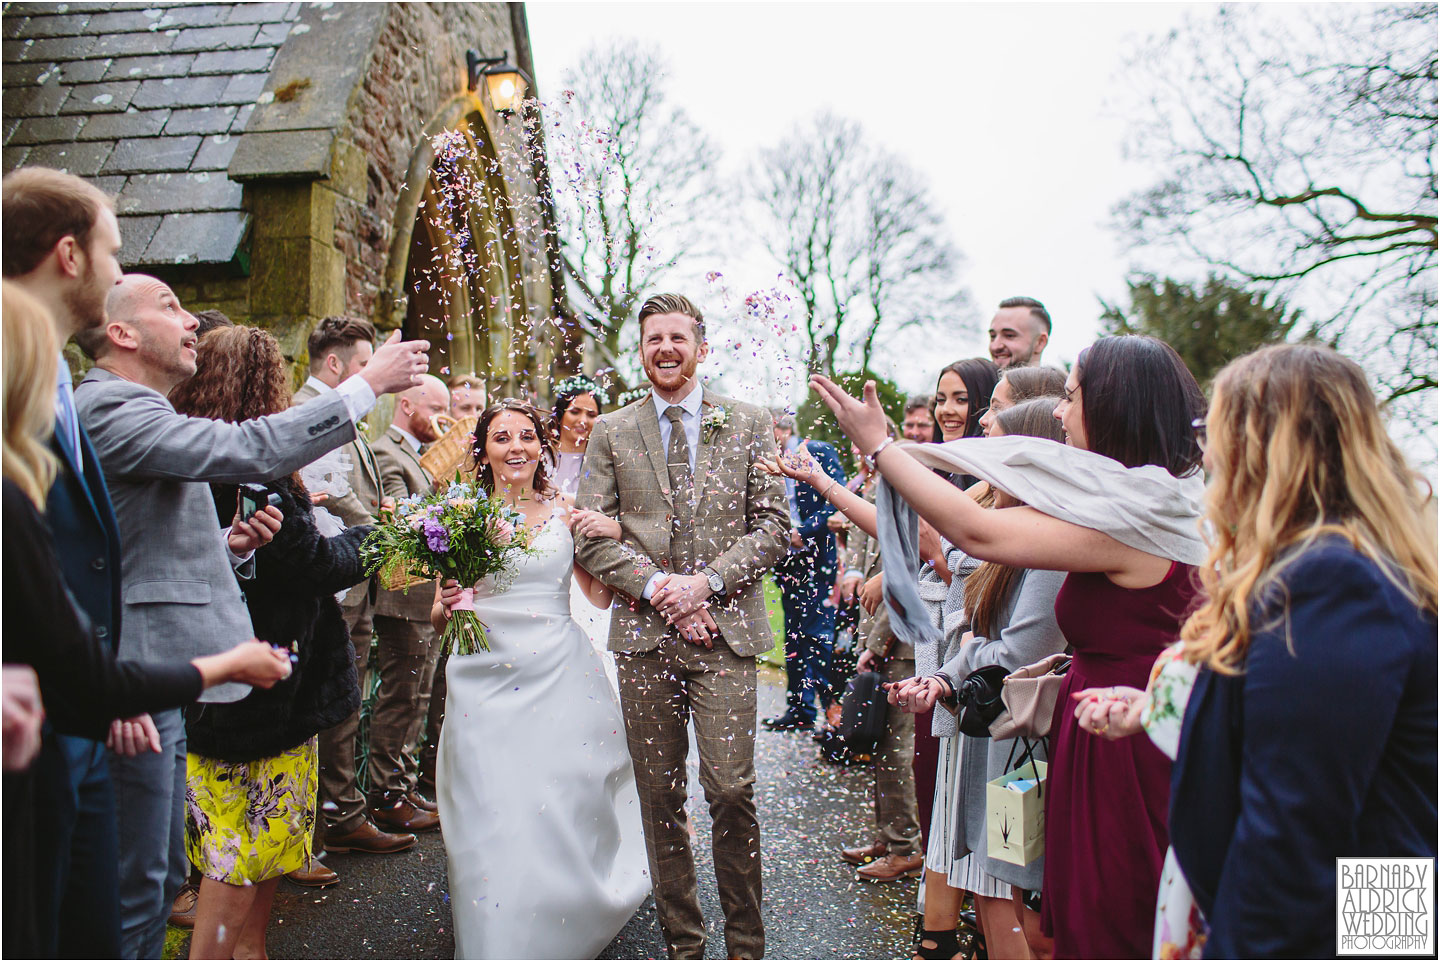 Confetti wedding photograph of a happy couple at Falcon Manor in Settle, Church confetti photo settle, Yorkshire Dales Wedding Photographs